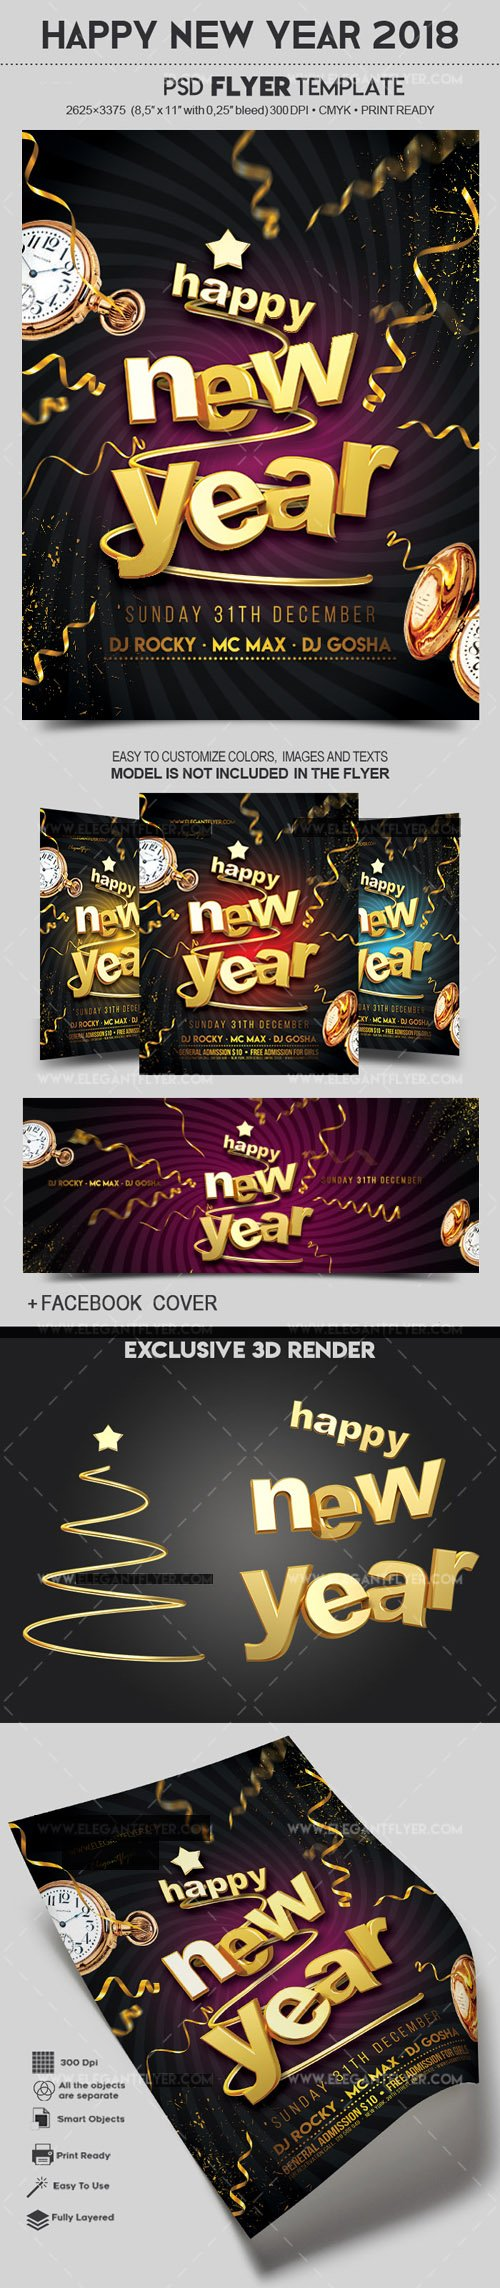 Happy New Year 2018 Flyer PSD Template (+ Facebook Cover)